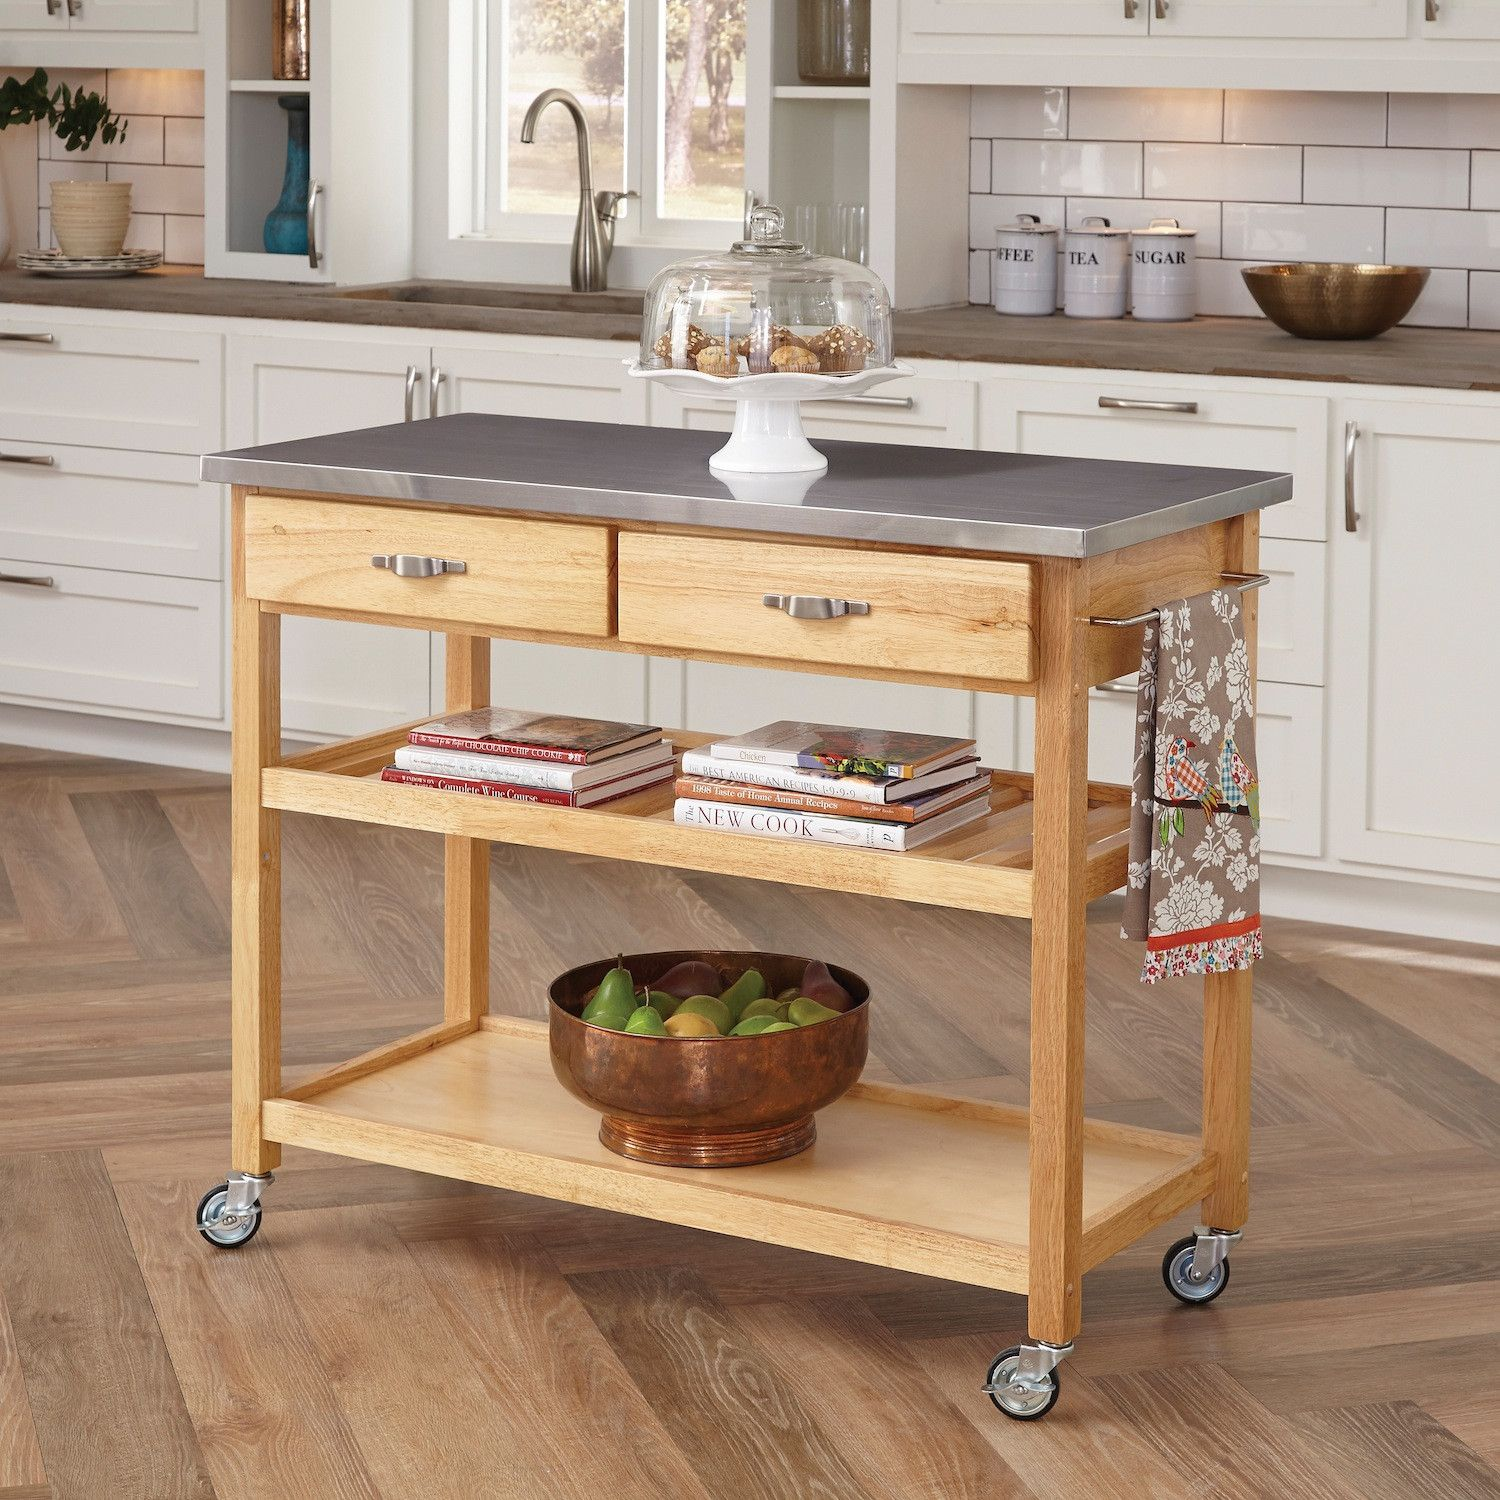 Home Styles Kitchen Island with Stainless Steel Top | first place ...